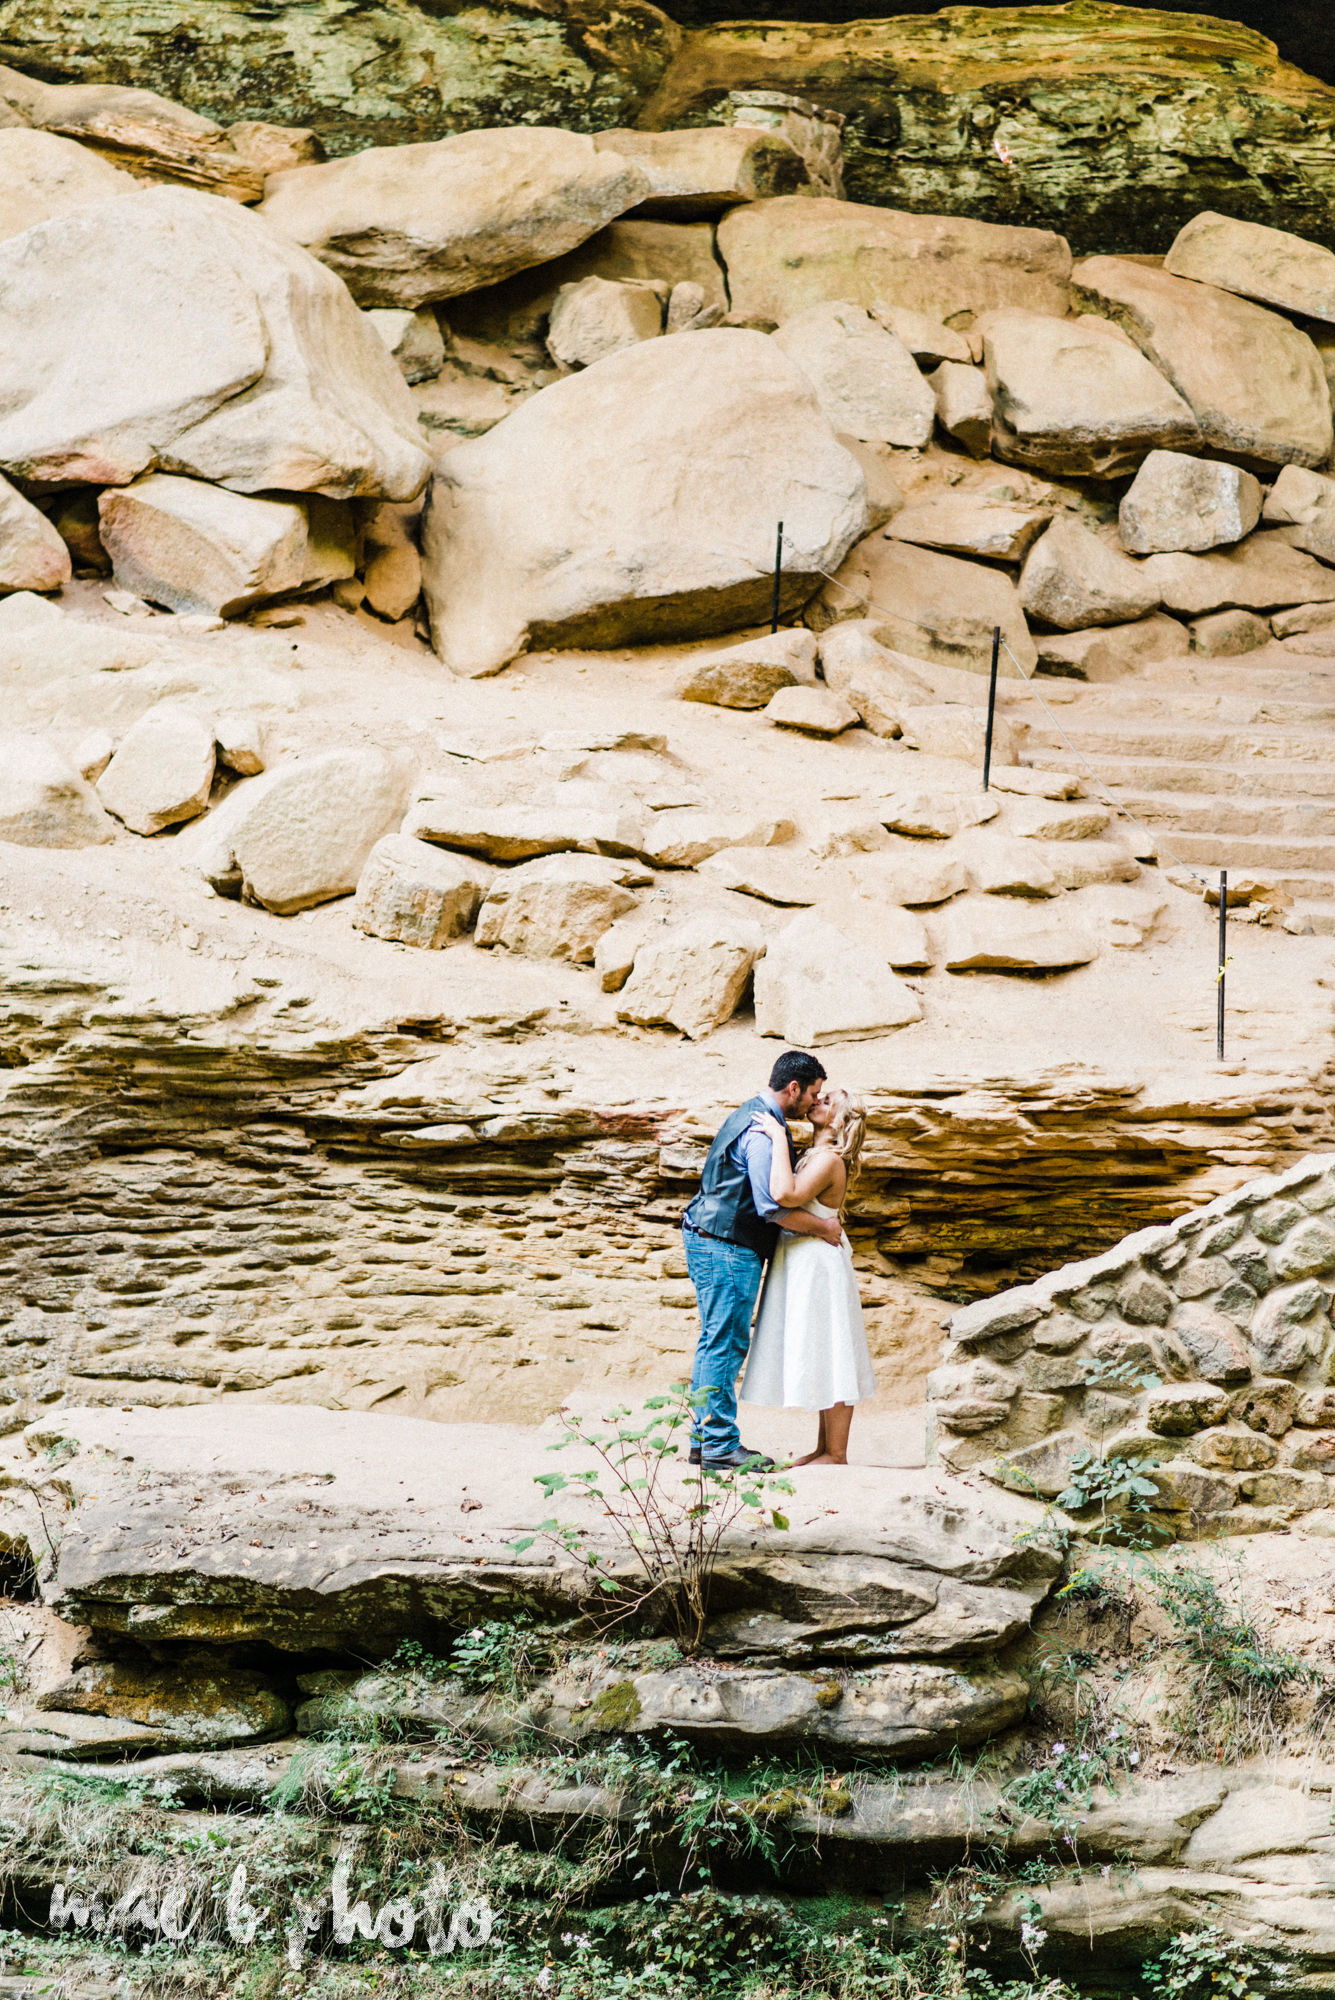 bobbi and pat's intimate fall cabin elopement in hocking hills old man's cave and rock house in logan ohio photographed by youngstown wedding photographer mae b photo-72.jpg